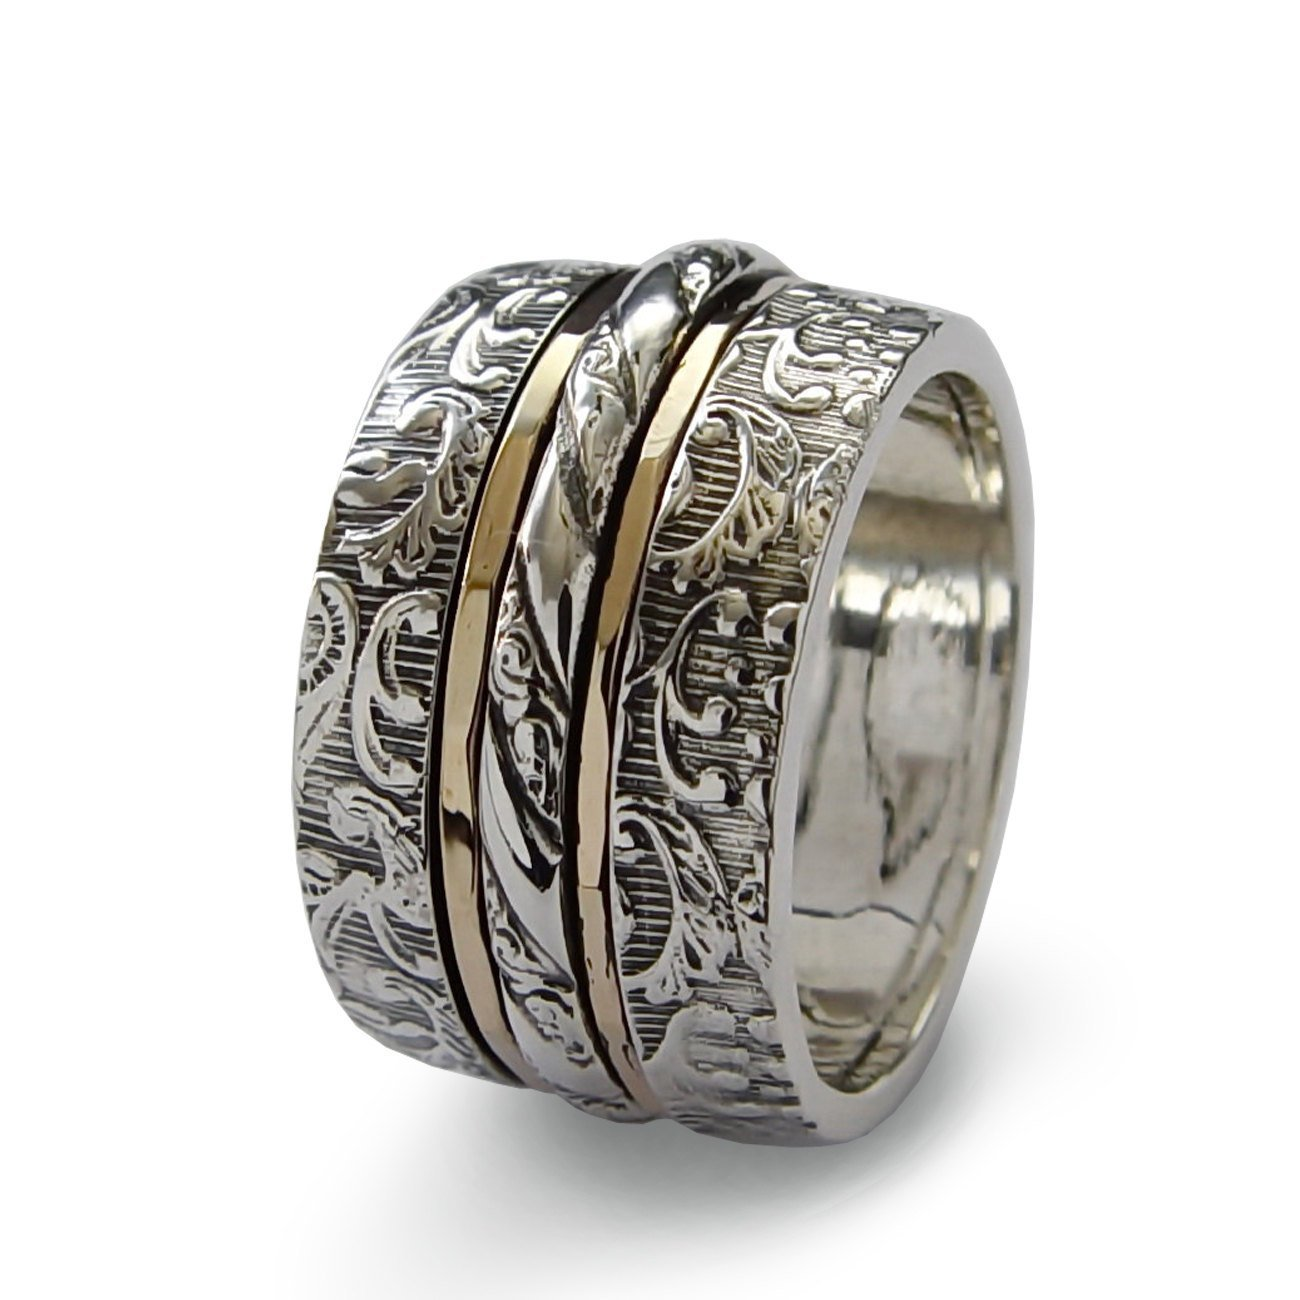 Silver botanical spinner ring, Worry ring Floral silver wide band and gold spinners, recycled metals Gold filled infinity band, wedding band